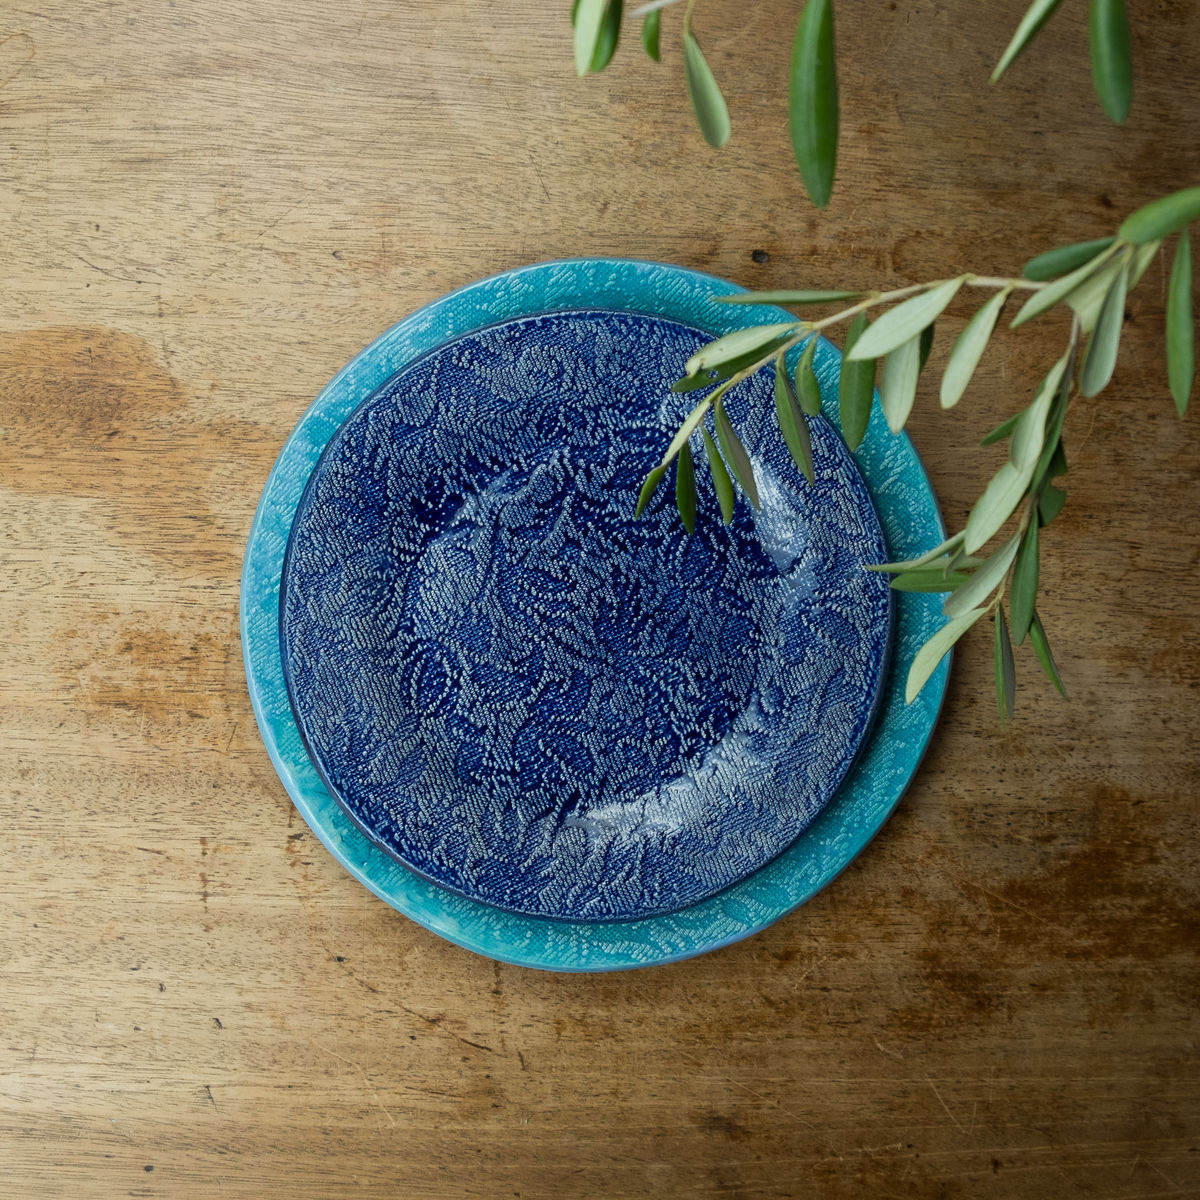 Turabi ceramics - Cobalt blue lace imprinted small plate - Handcrafted in Palestine - product images  of